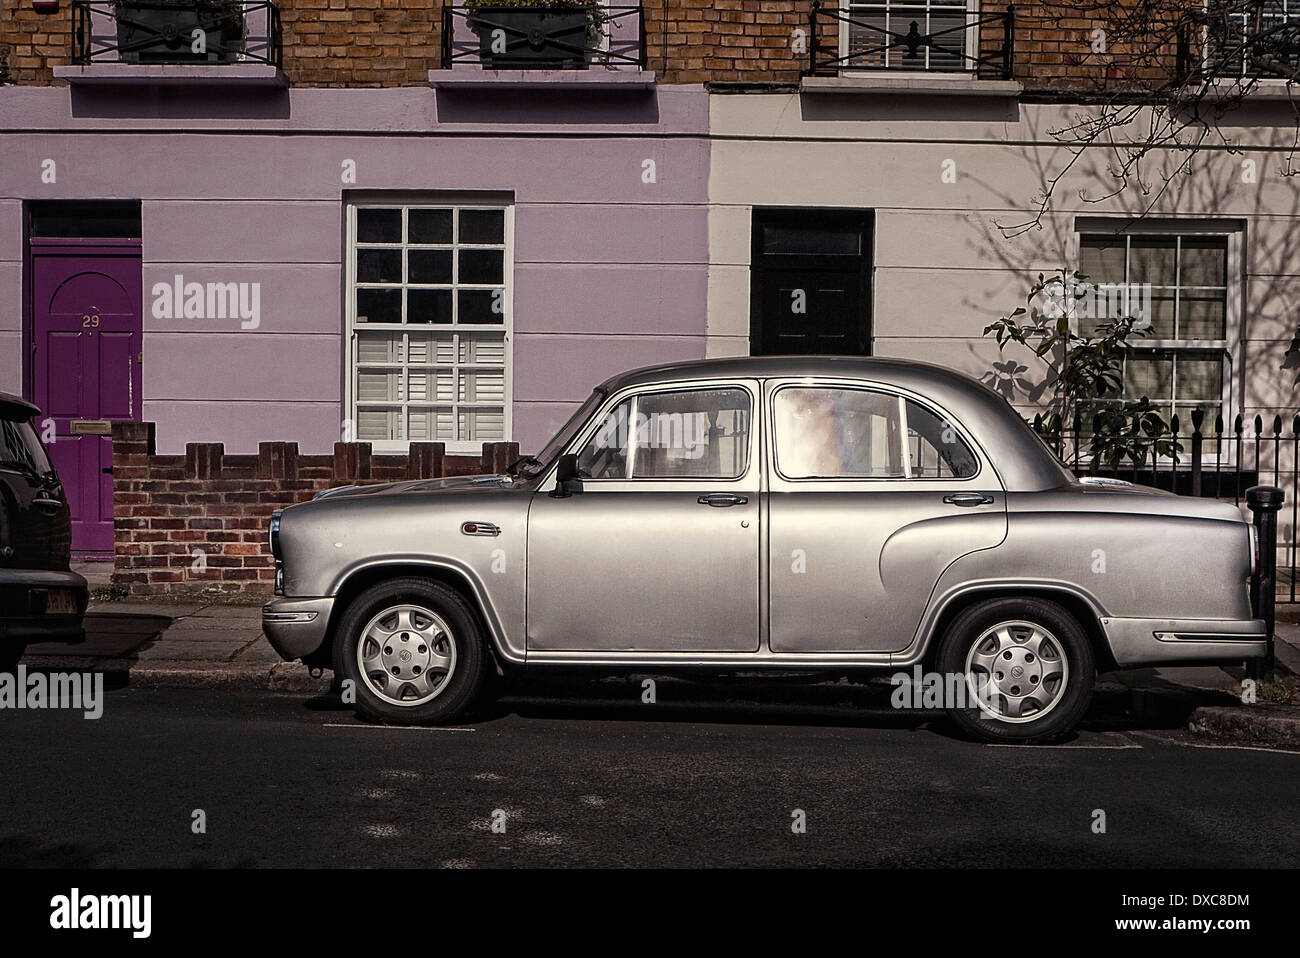 Fullbore Ambassador Grand Indian Automobile parked on a London Street - Stock Image